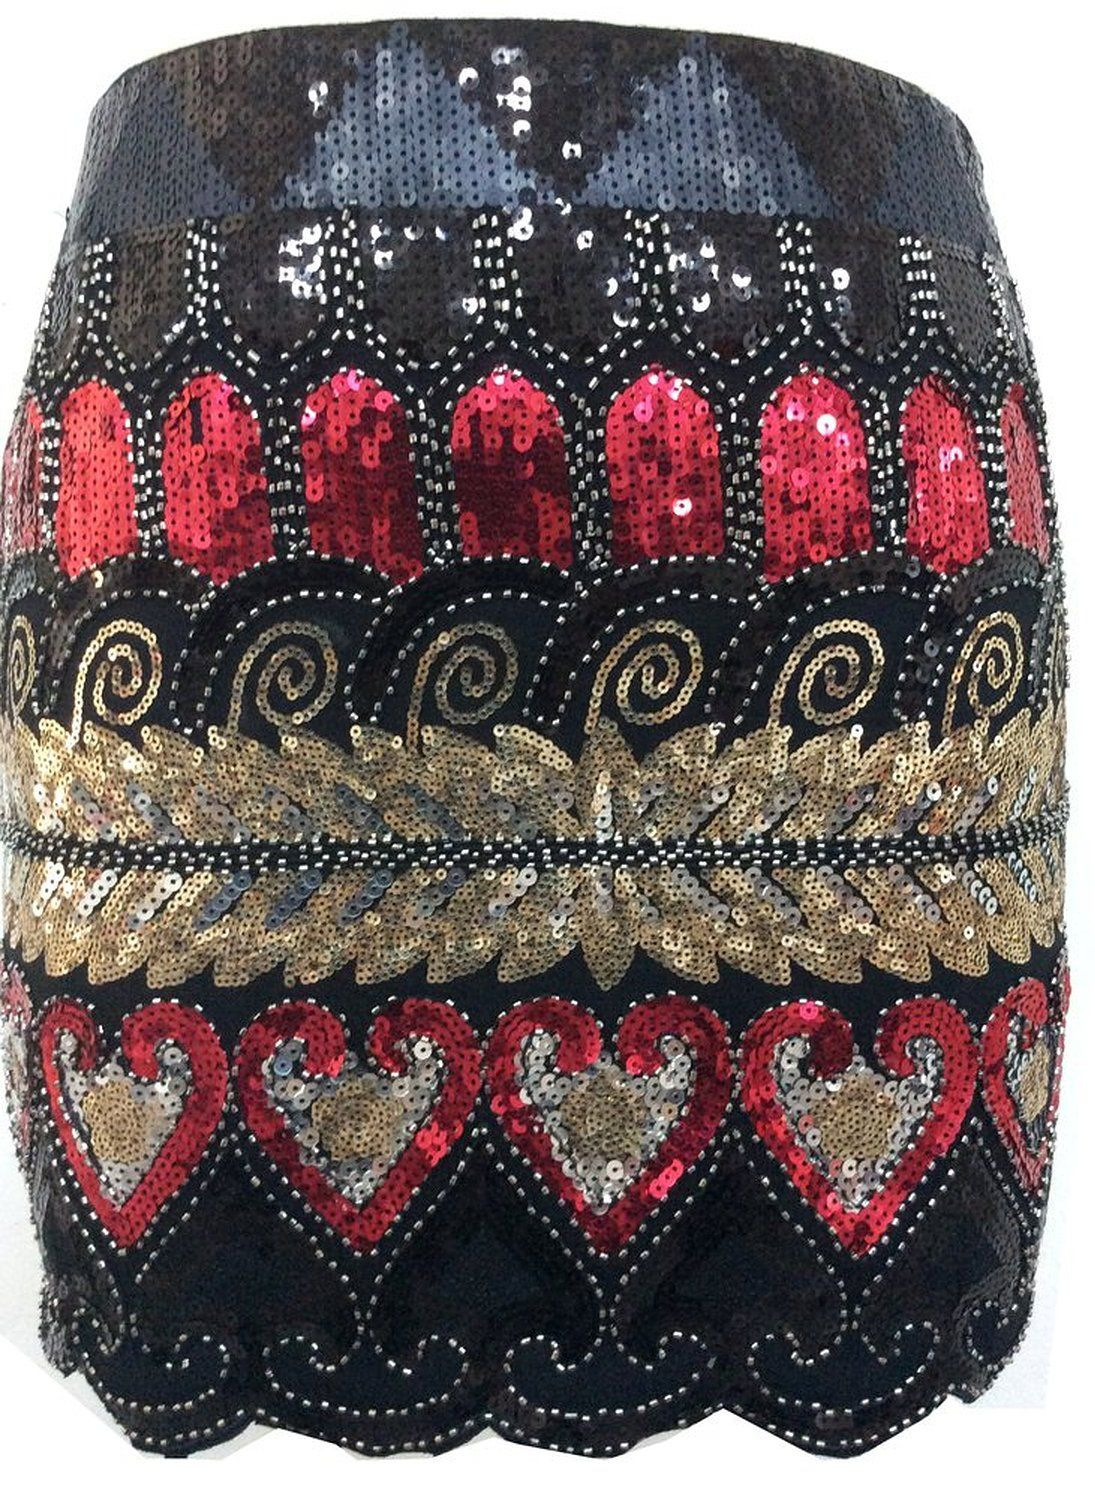 7b42ee98 Izacu Flocc® Women 1920s Gatsby Sequin Art Deco Scalloped Hem Inspired  Flapper Mini Skirt: Amazon.co.uk: Clothing